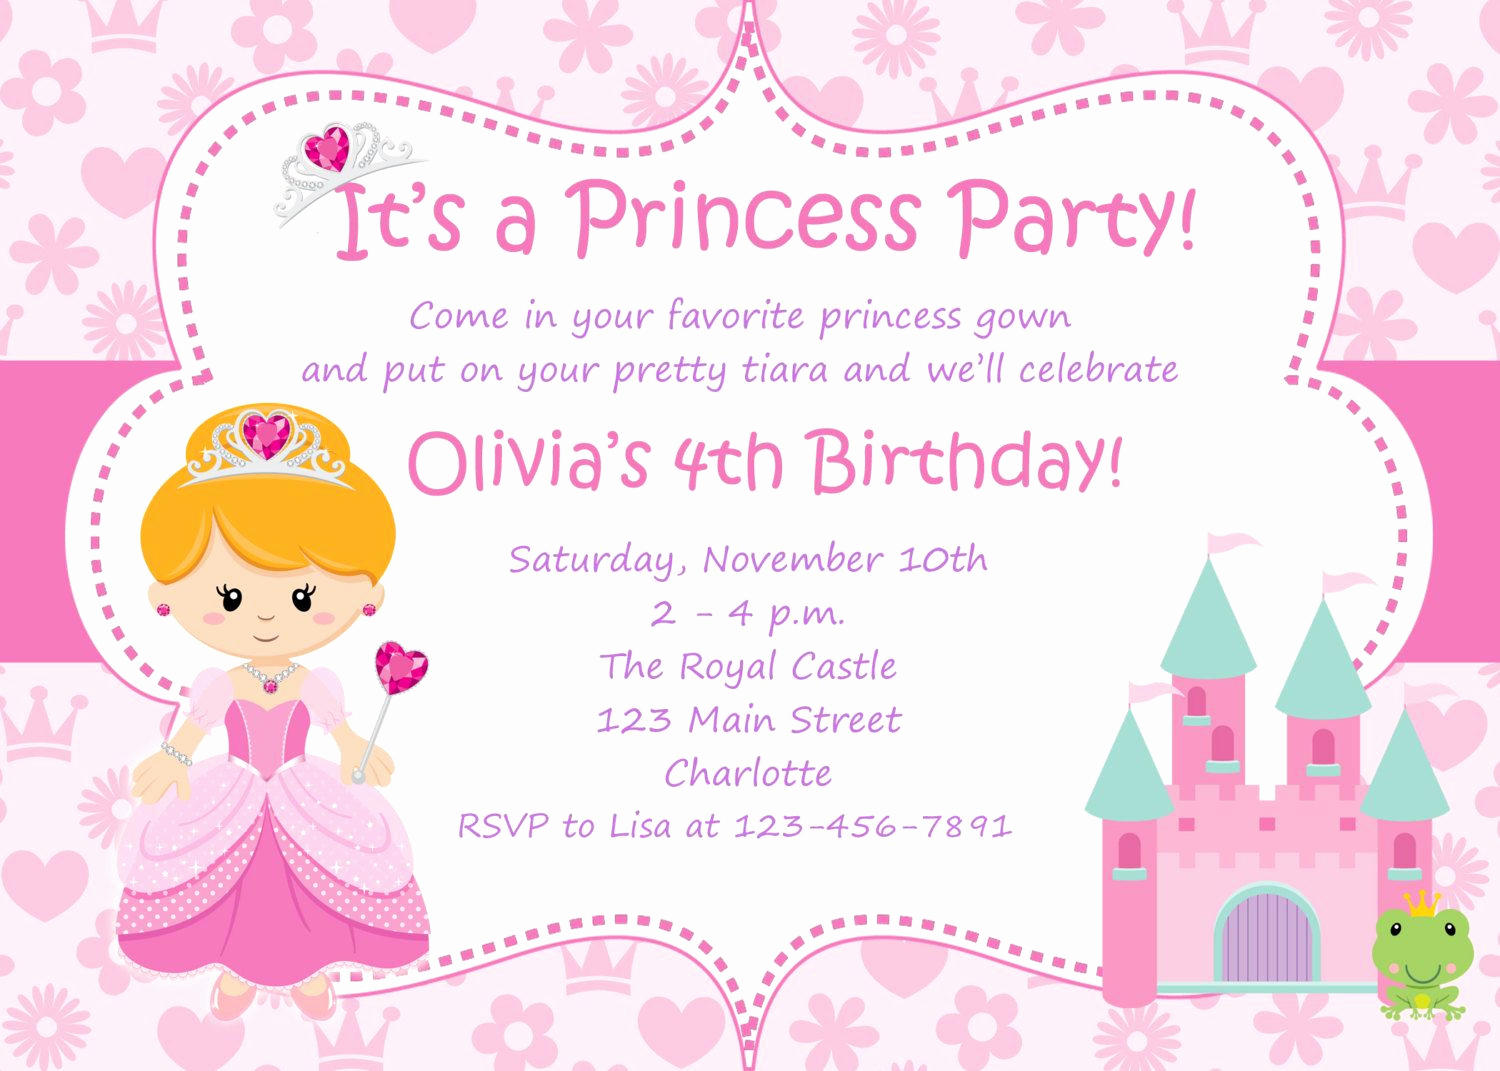 Princess Party Invitation Template Fresh Google Image Result for